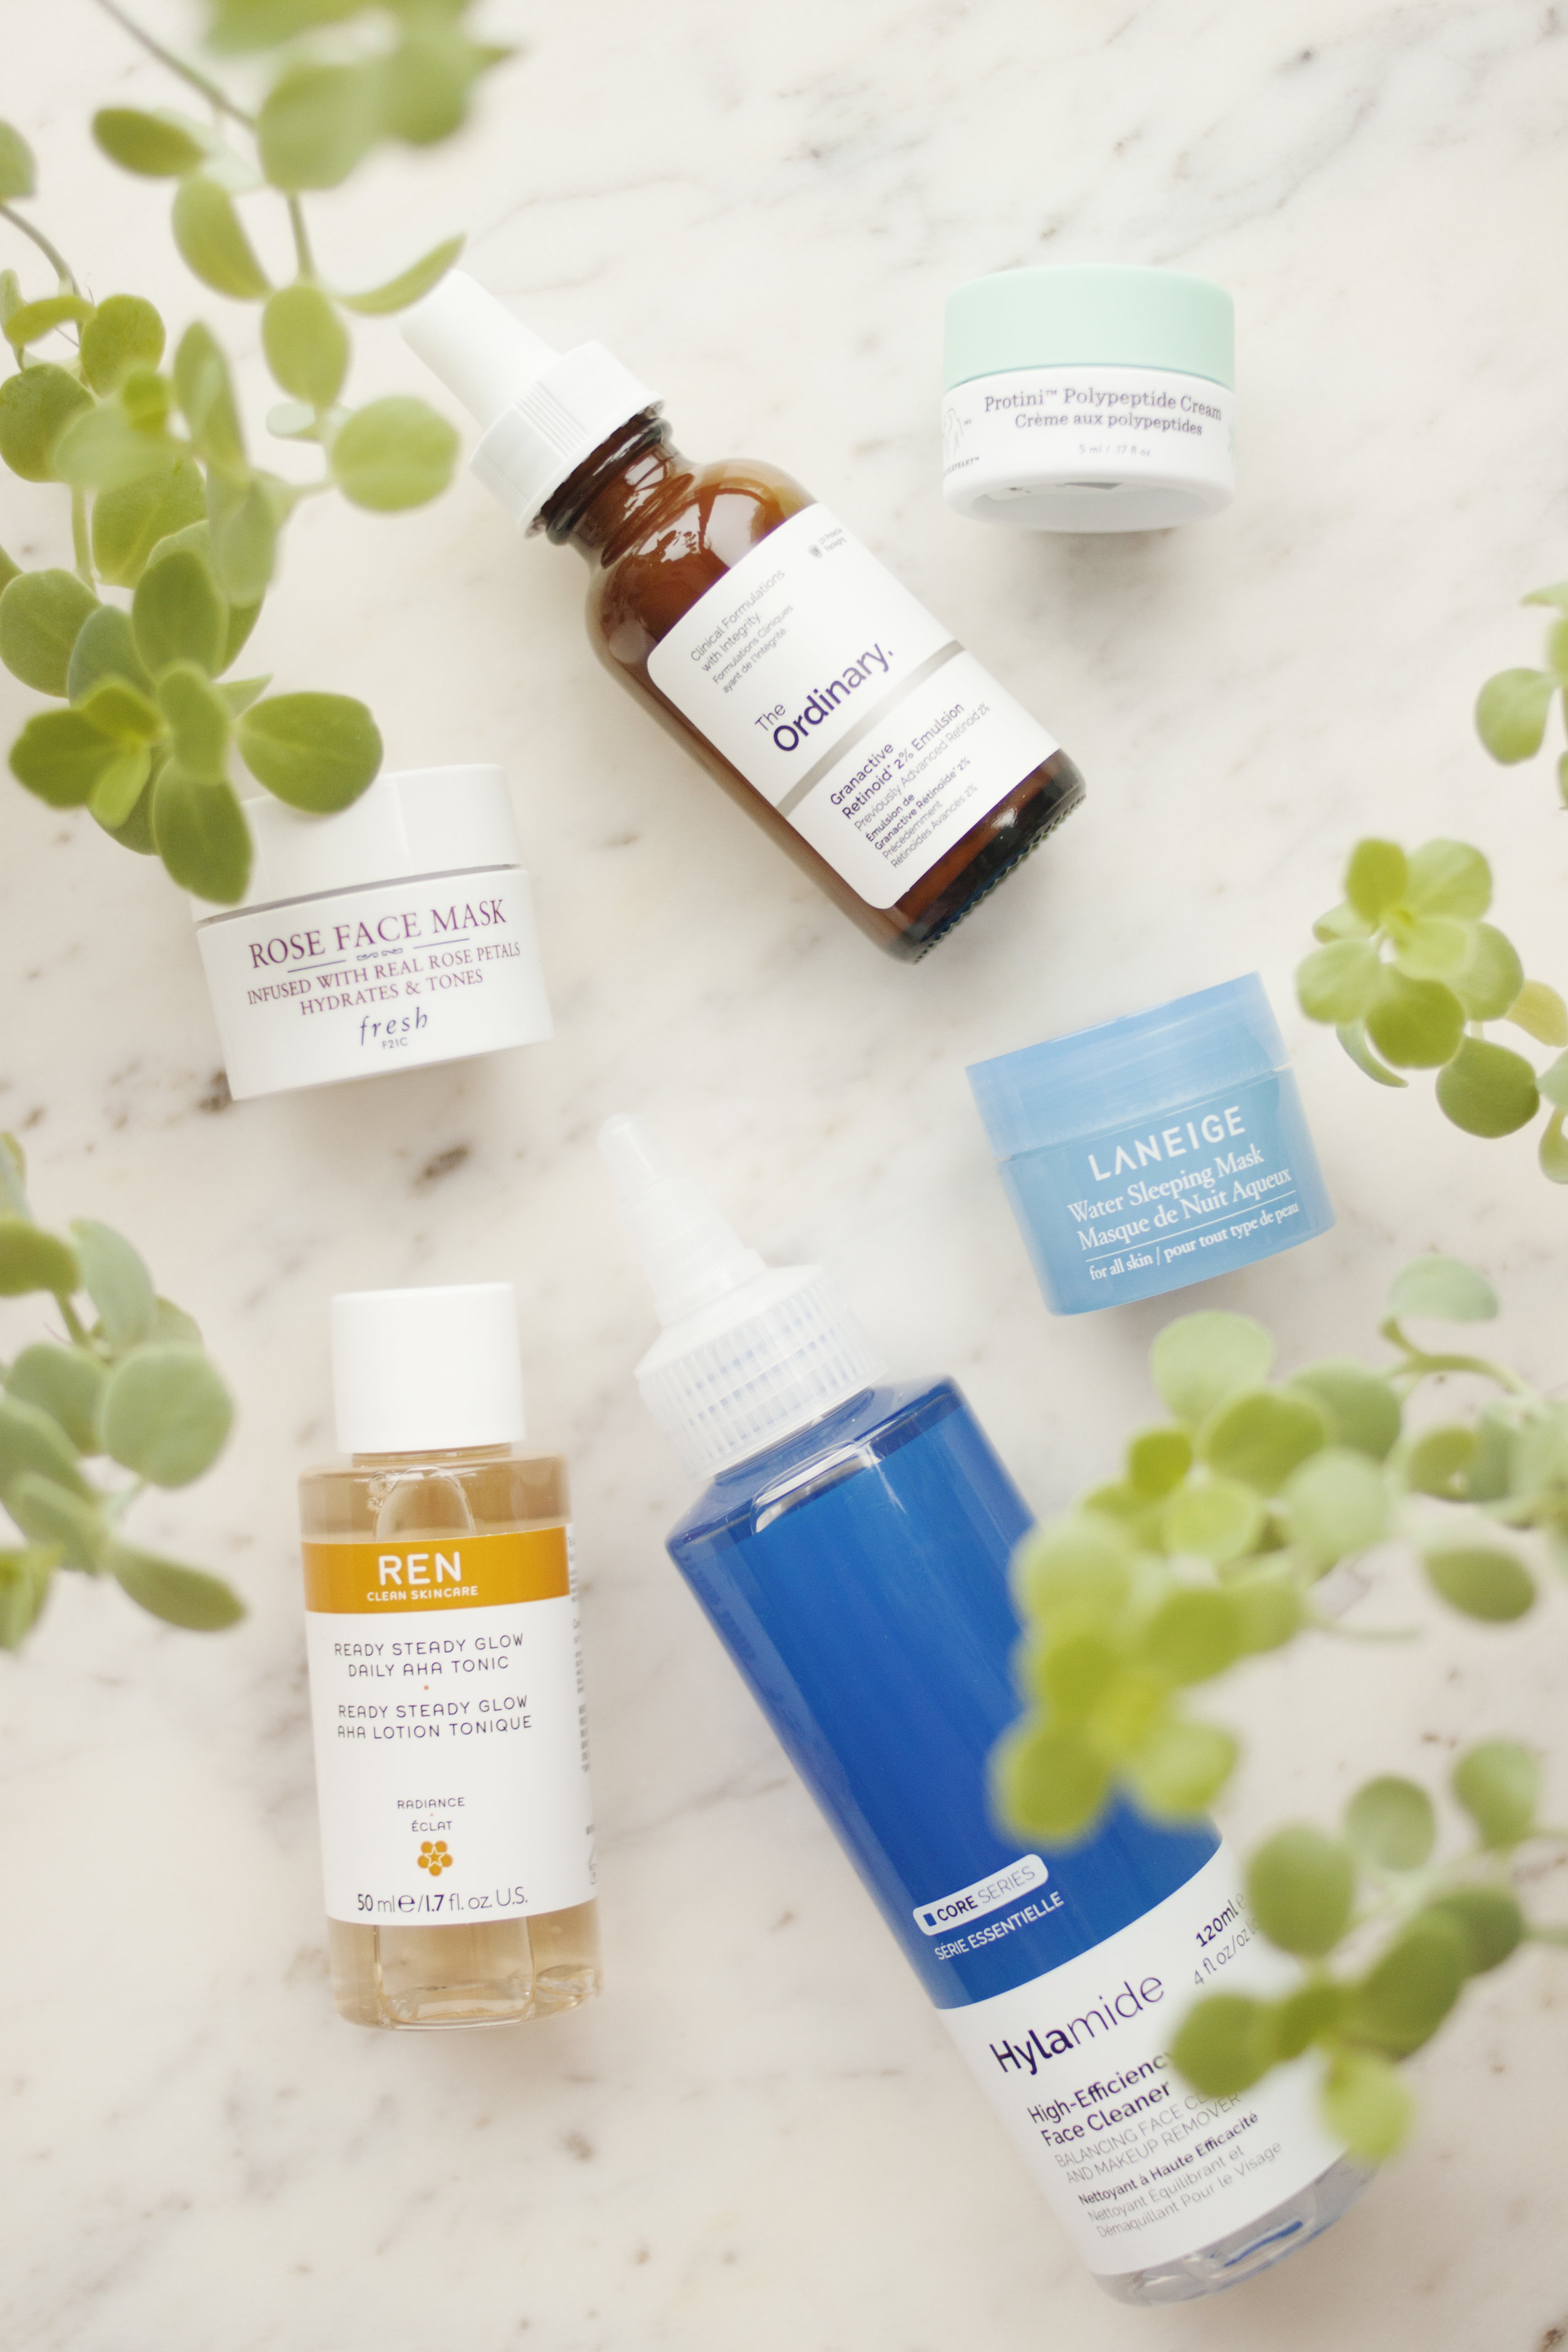 Skincare - The only skincare product I wanted to restock is my retinoind - I'm coming to the end of my bottle of Sunday Riley's Luna (AU), and after spotting it on Sephora I thought I'd pick up The Ordinary's Granactive Retinoid 2% Emulsion (AU) since I've heard so much about it. I've generally had fairly good experiences with products from The Ordinary, and I've heard some people say they love this product while others have had a reaction to it, so I wanted to try it out for myself. I haven't actually opened it just yet but it won't be too long before I give it a shot and I'm very interested to see what kind of results I get from it.The Hylamide High-Efficiency Face Cleaner (AU) came in that Black Friday set I mentioned earlier, and based on the name and appearance of the product, I wrongly assumed this was a micellar water! I was chatting with a friend at work about skincare and when she told me she was using Dr. Bronner's on her face I strongly urged her to go to a Deciem store, and someone who worked there recommended this to her. So a few days later she told me she'd bought a blue cleanser and, knowing I had this in my backups stash, when I got home I pulled it out to take a second look. Turns out it's basically an oil cleanser! In the evenings I can put it on my dry face, massage it around to break down my makeup and then remove it with warm water and a cloth, and all my makeup is gone! I second cleanse anyway because that's just what I do, but this totally took me by surprise because it wasn't what I thought it was at all. So if you're looking for an oil cleanser for your makeup removing step, this one will definitely do the job and I'm a fan!